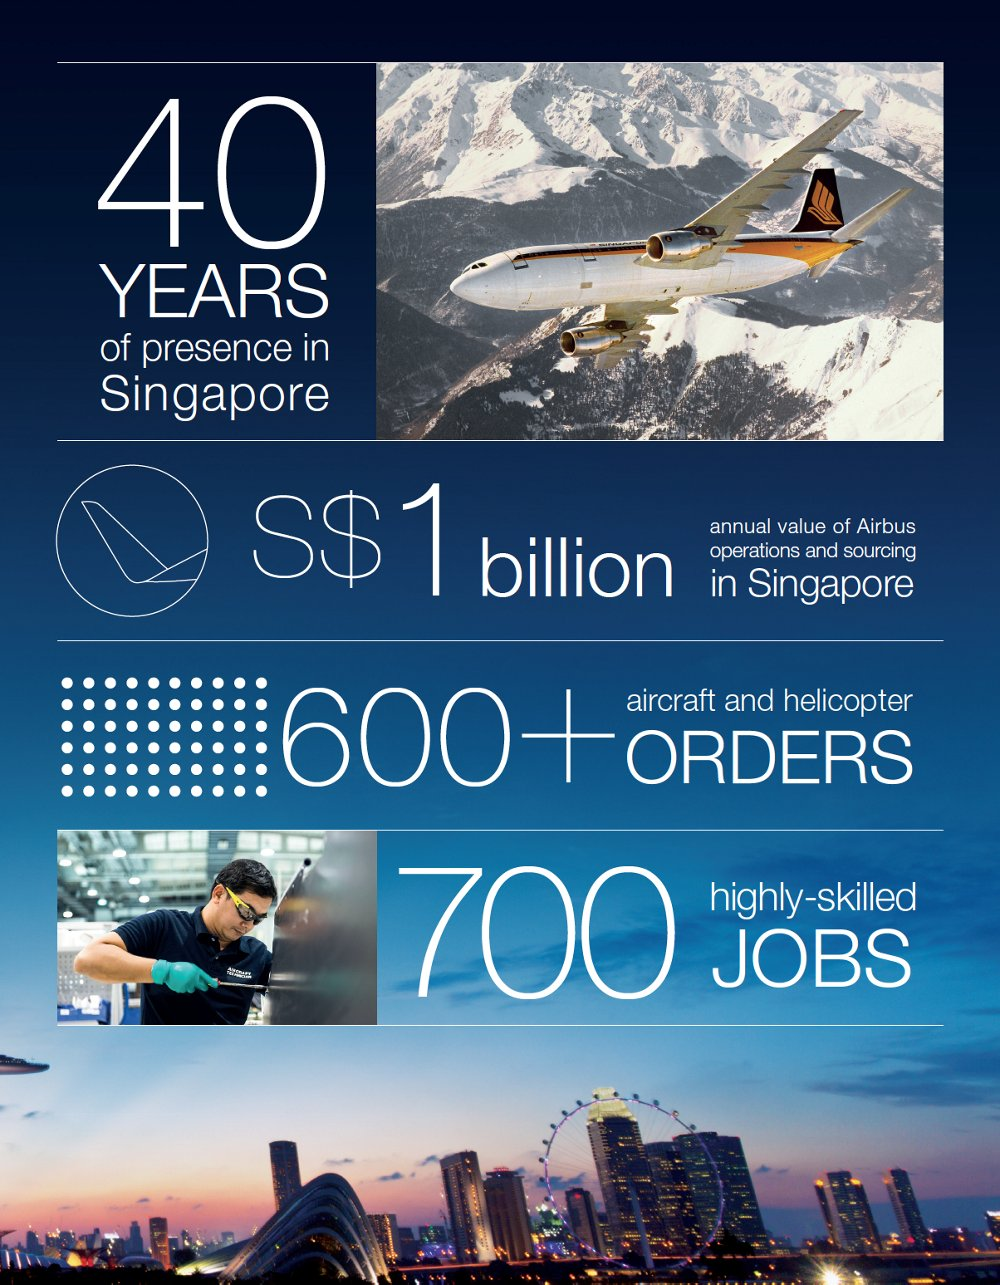 Singapore - Worldwide presence - Airbus